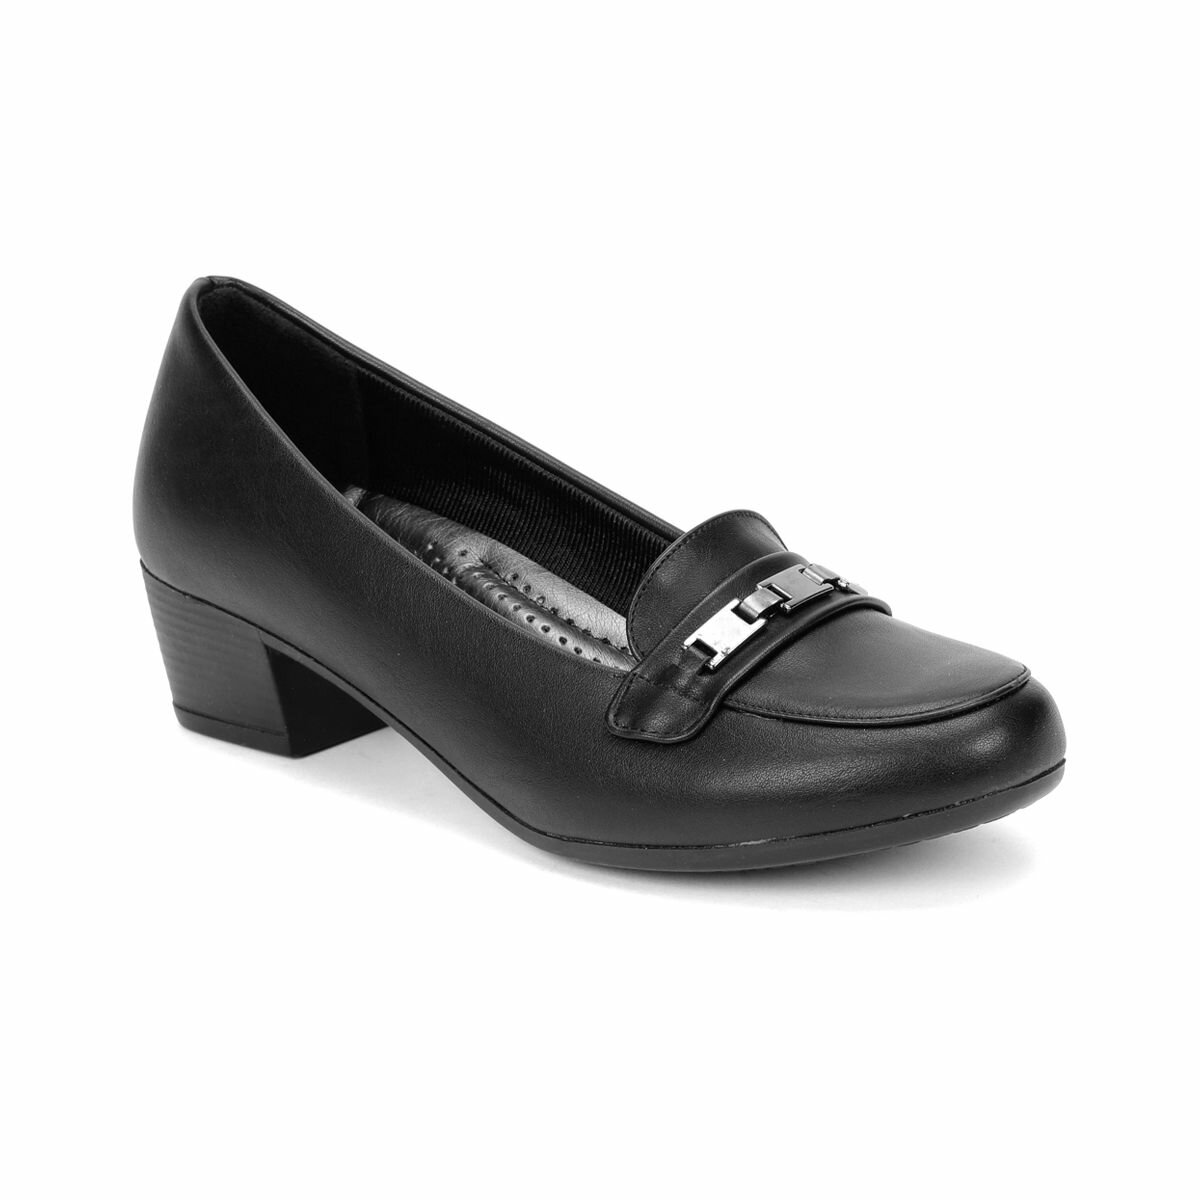 FLO 81. 156599.Z Black Women Ökçeli Shoes Polaris